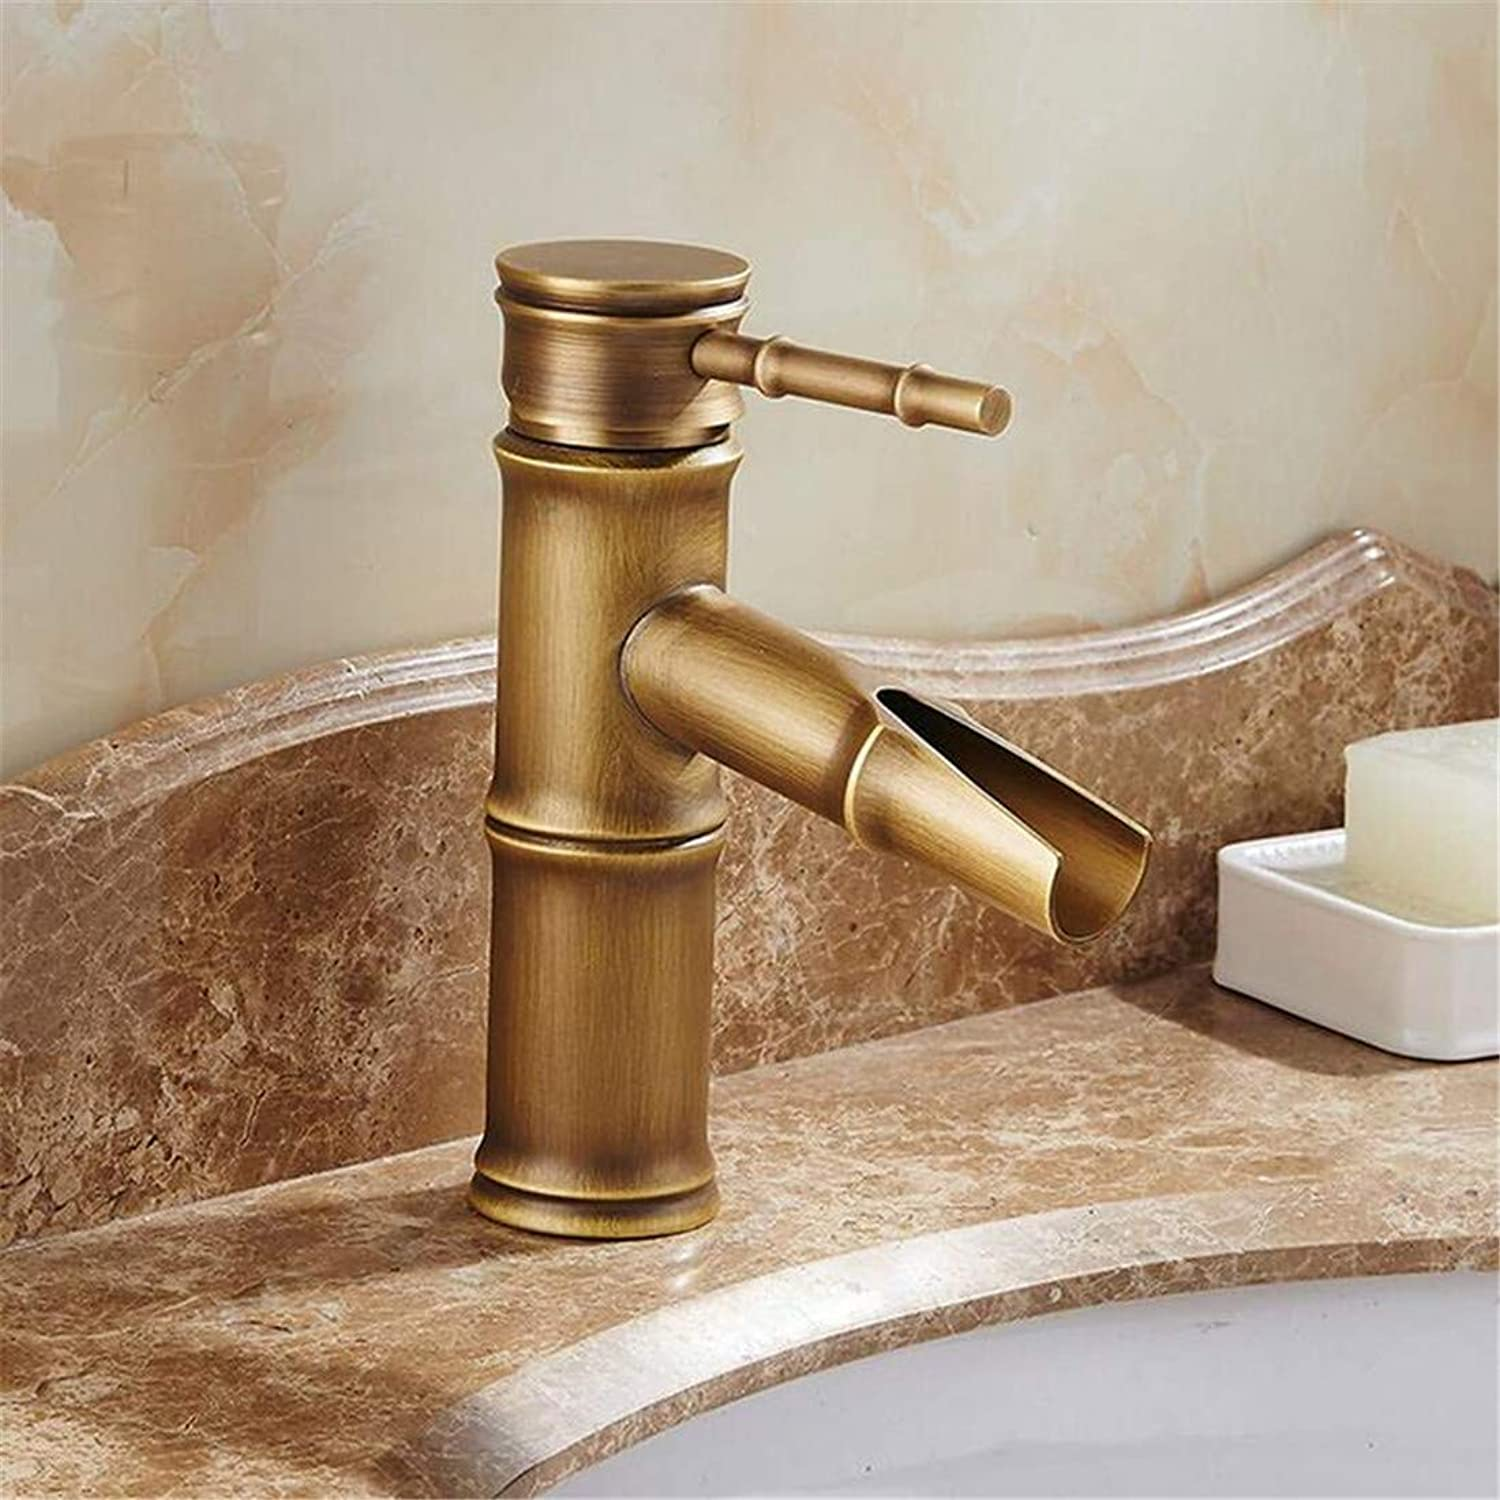 Kitchen Brass Bathroom Retro Bathroom Faucet Antique Bronze Finish Brass Basin Sink Faucet Single Handle Bamboo Water Tap